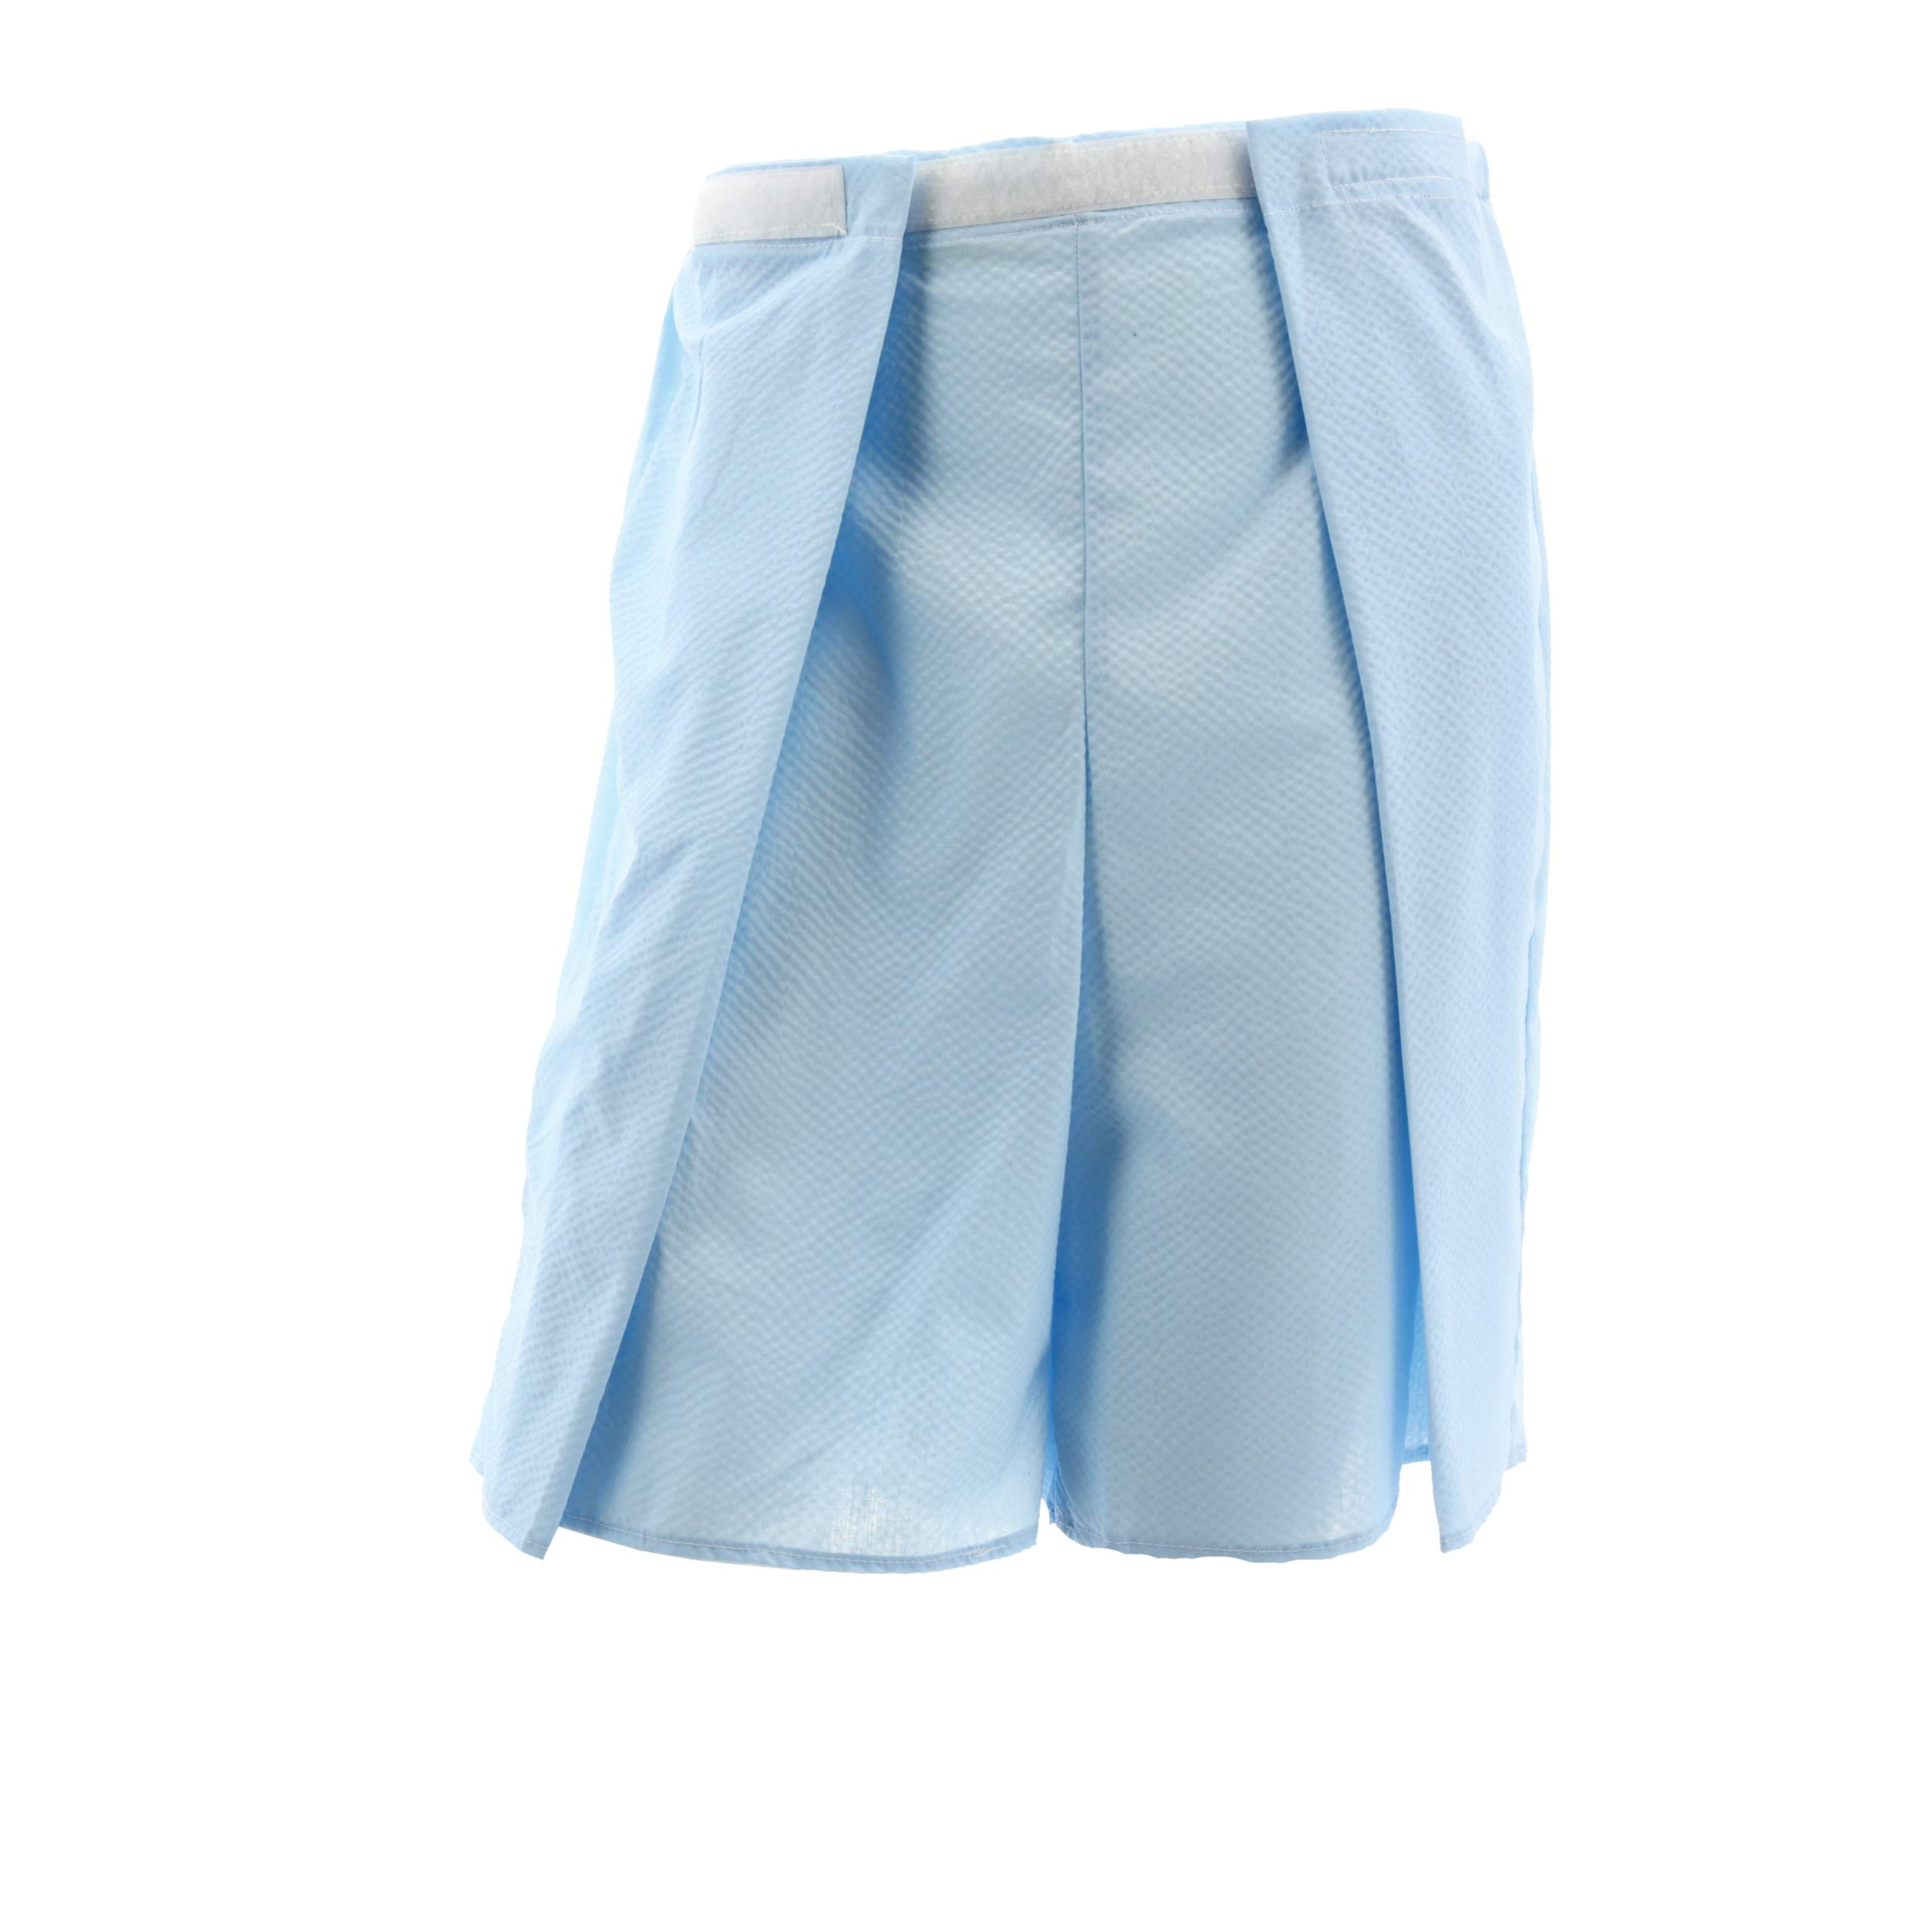 Core Products Patient Shorts, Blue - XSmall by Core Products